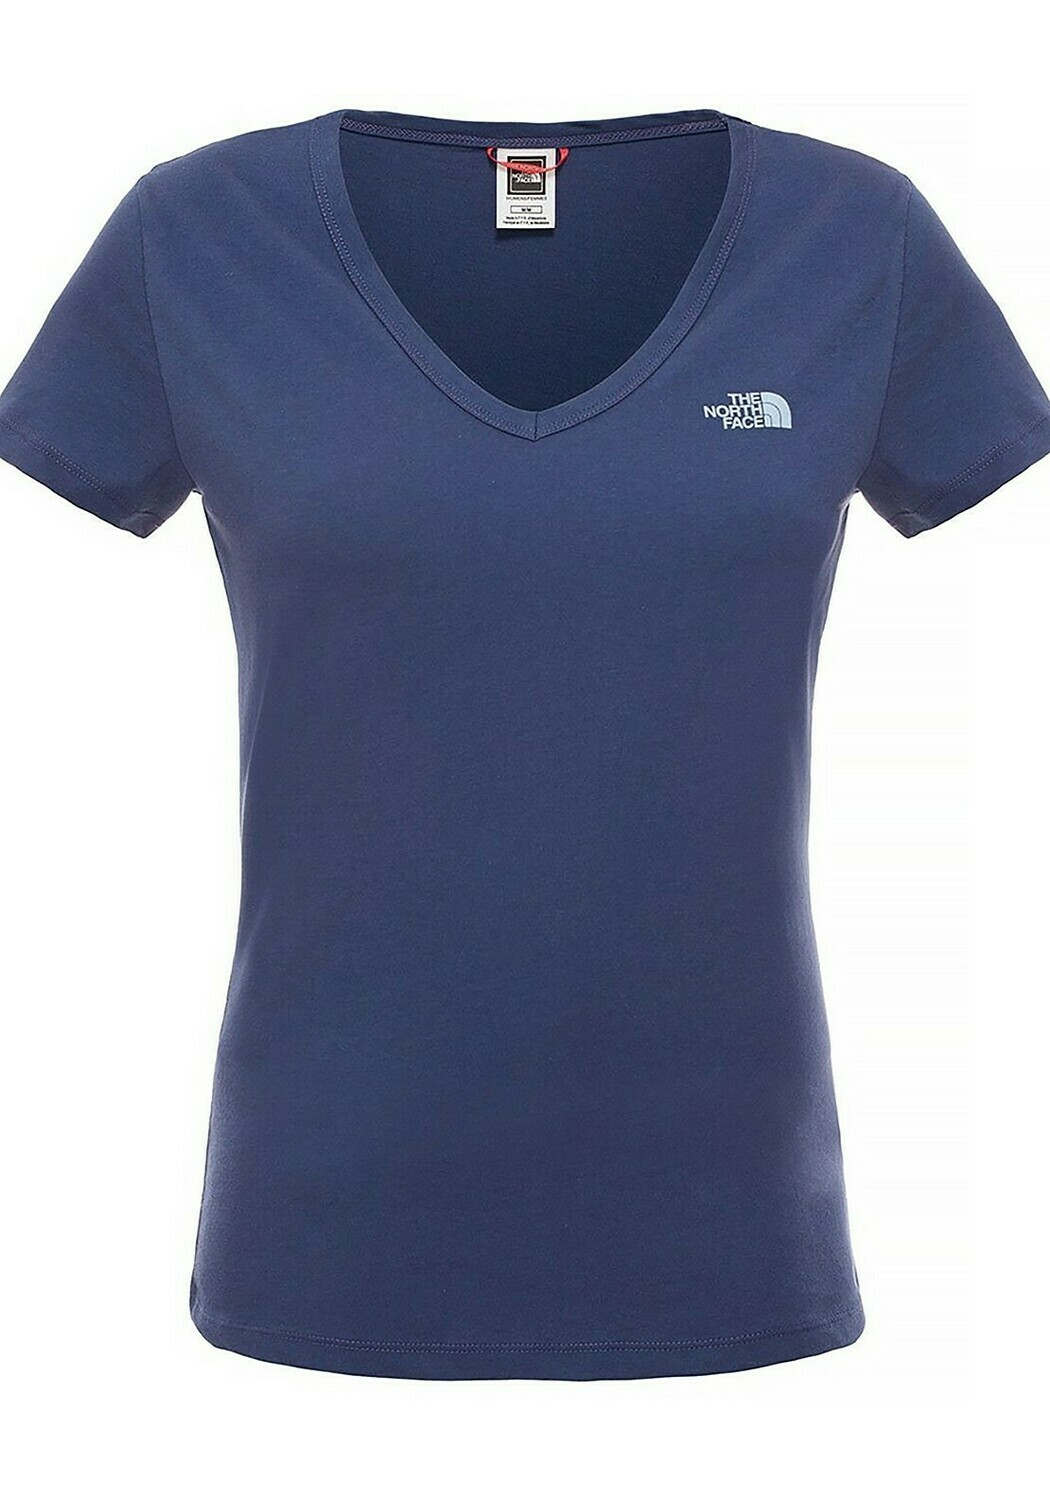 W NF Simple Dome Tee - Navy